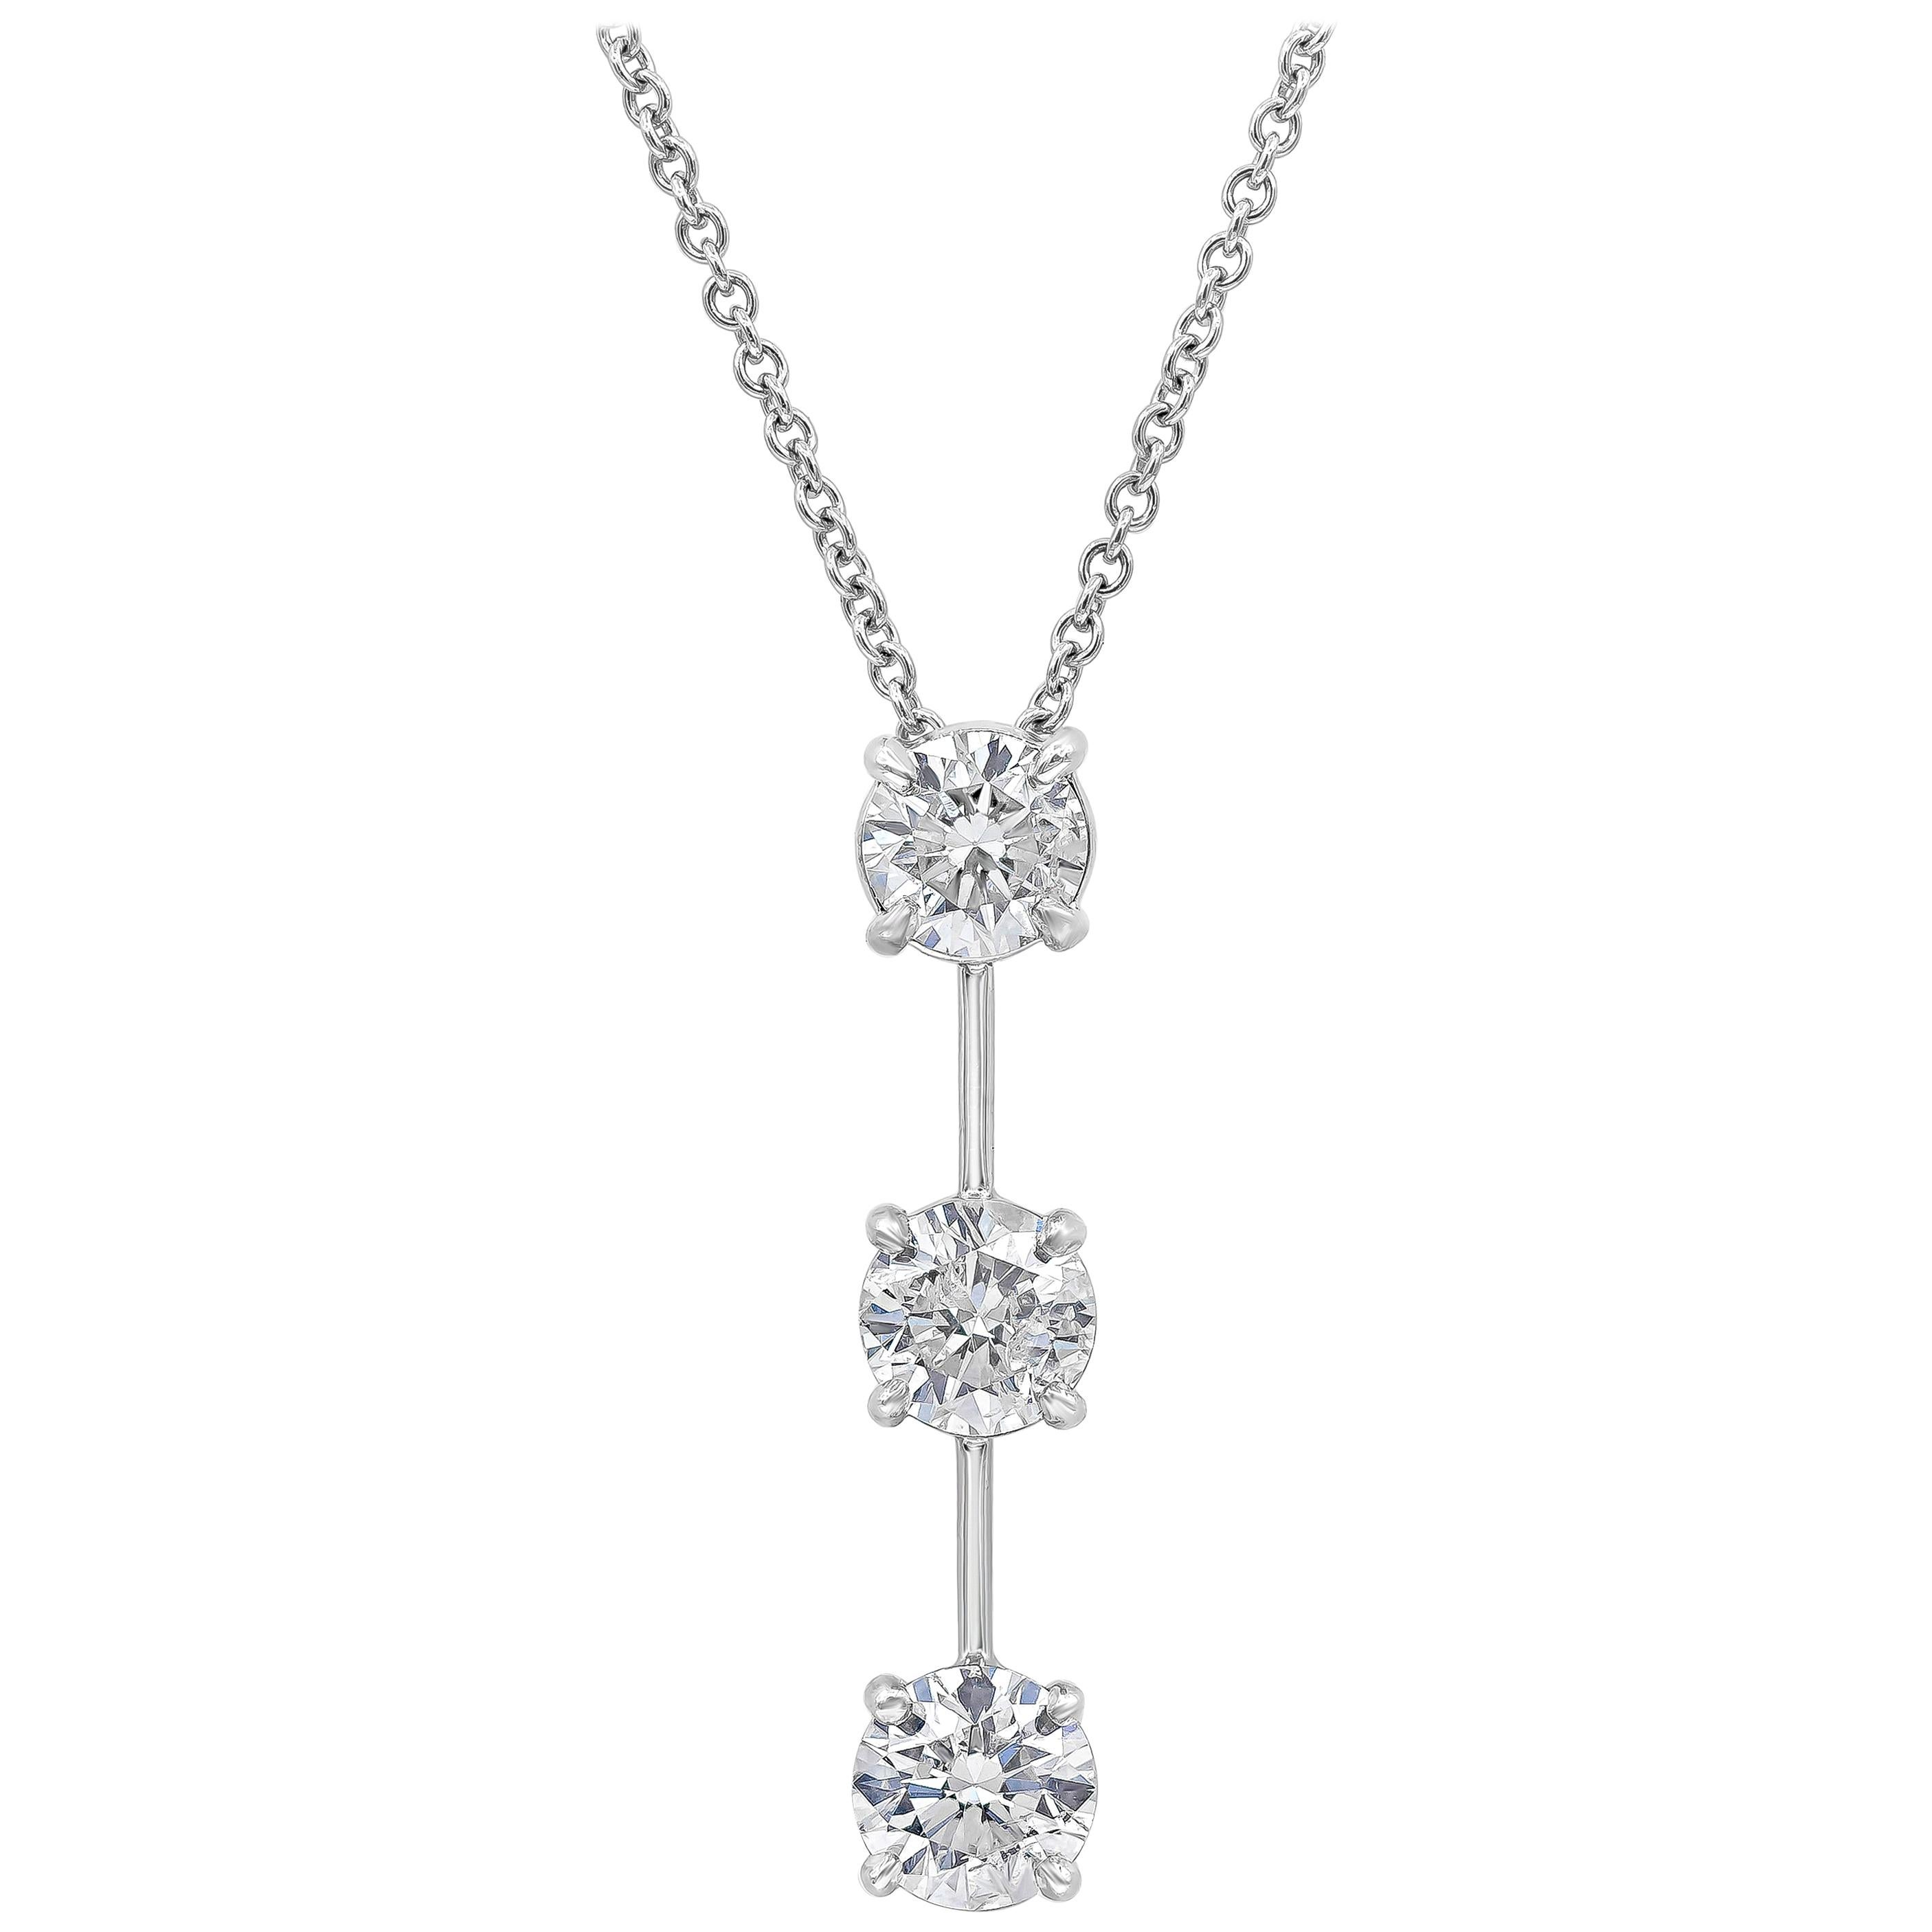 Roman Malakov 3.10 Carat Round Diamond Three-Stone Drop Pendant Necklace